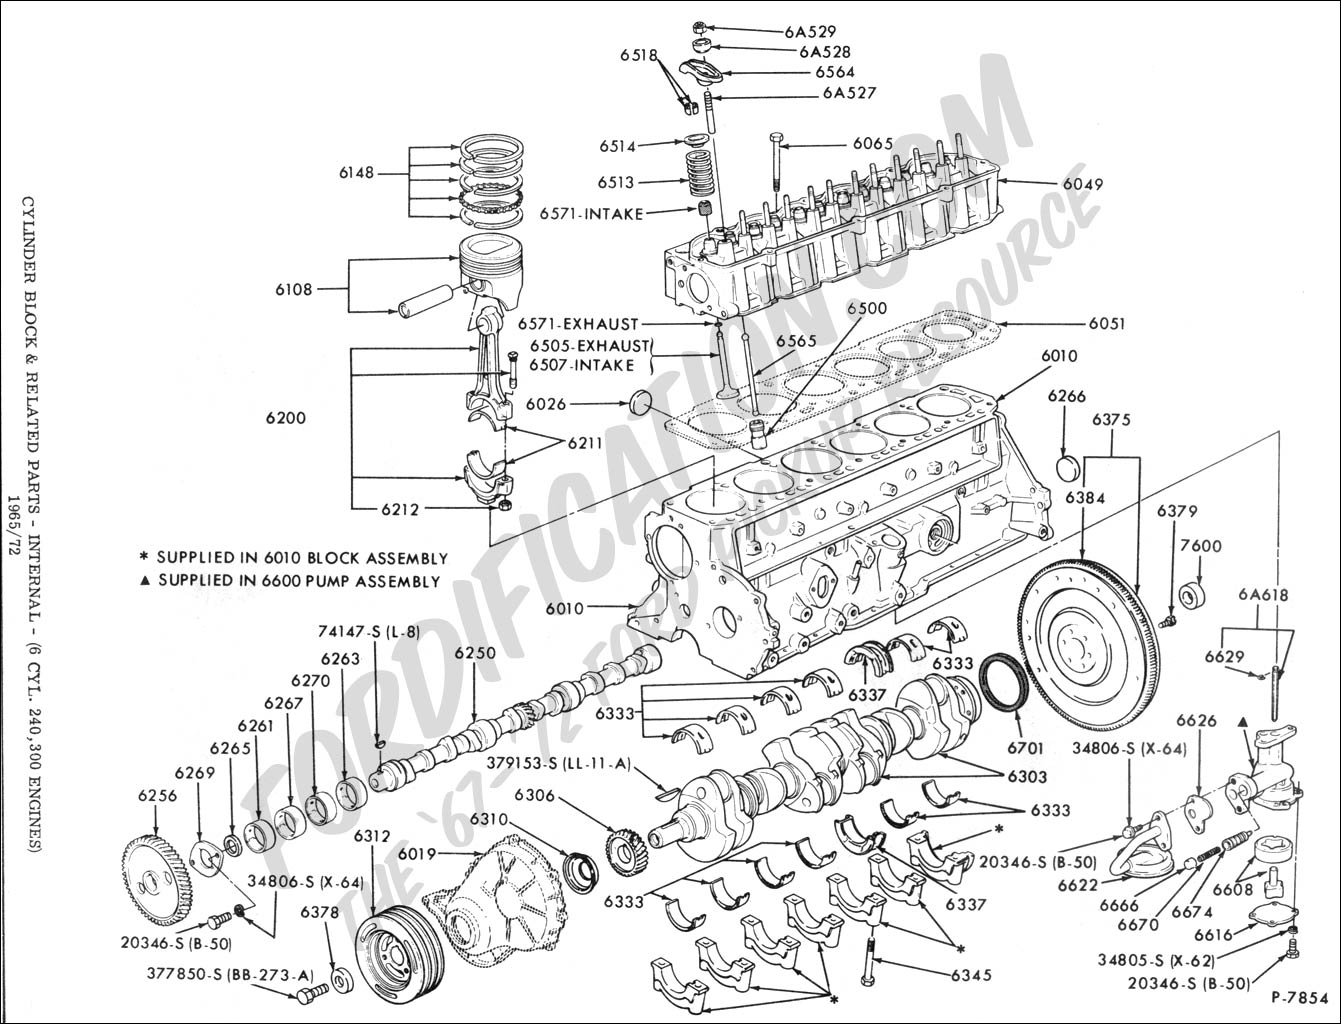 Ford Engine Wiring Diagram : Internal combustion engine diagram ford